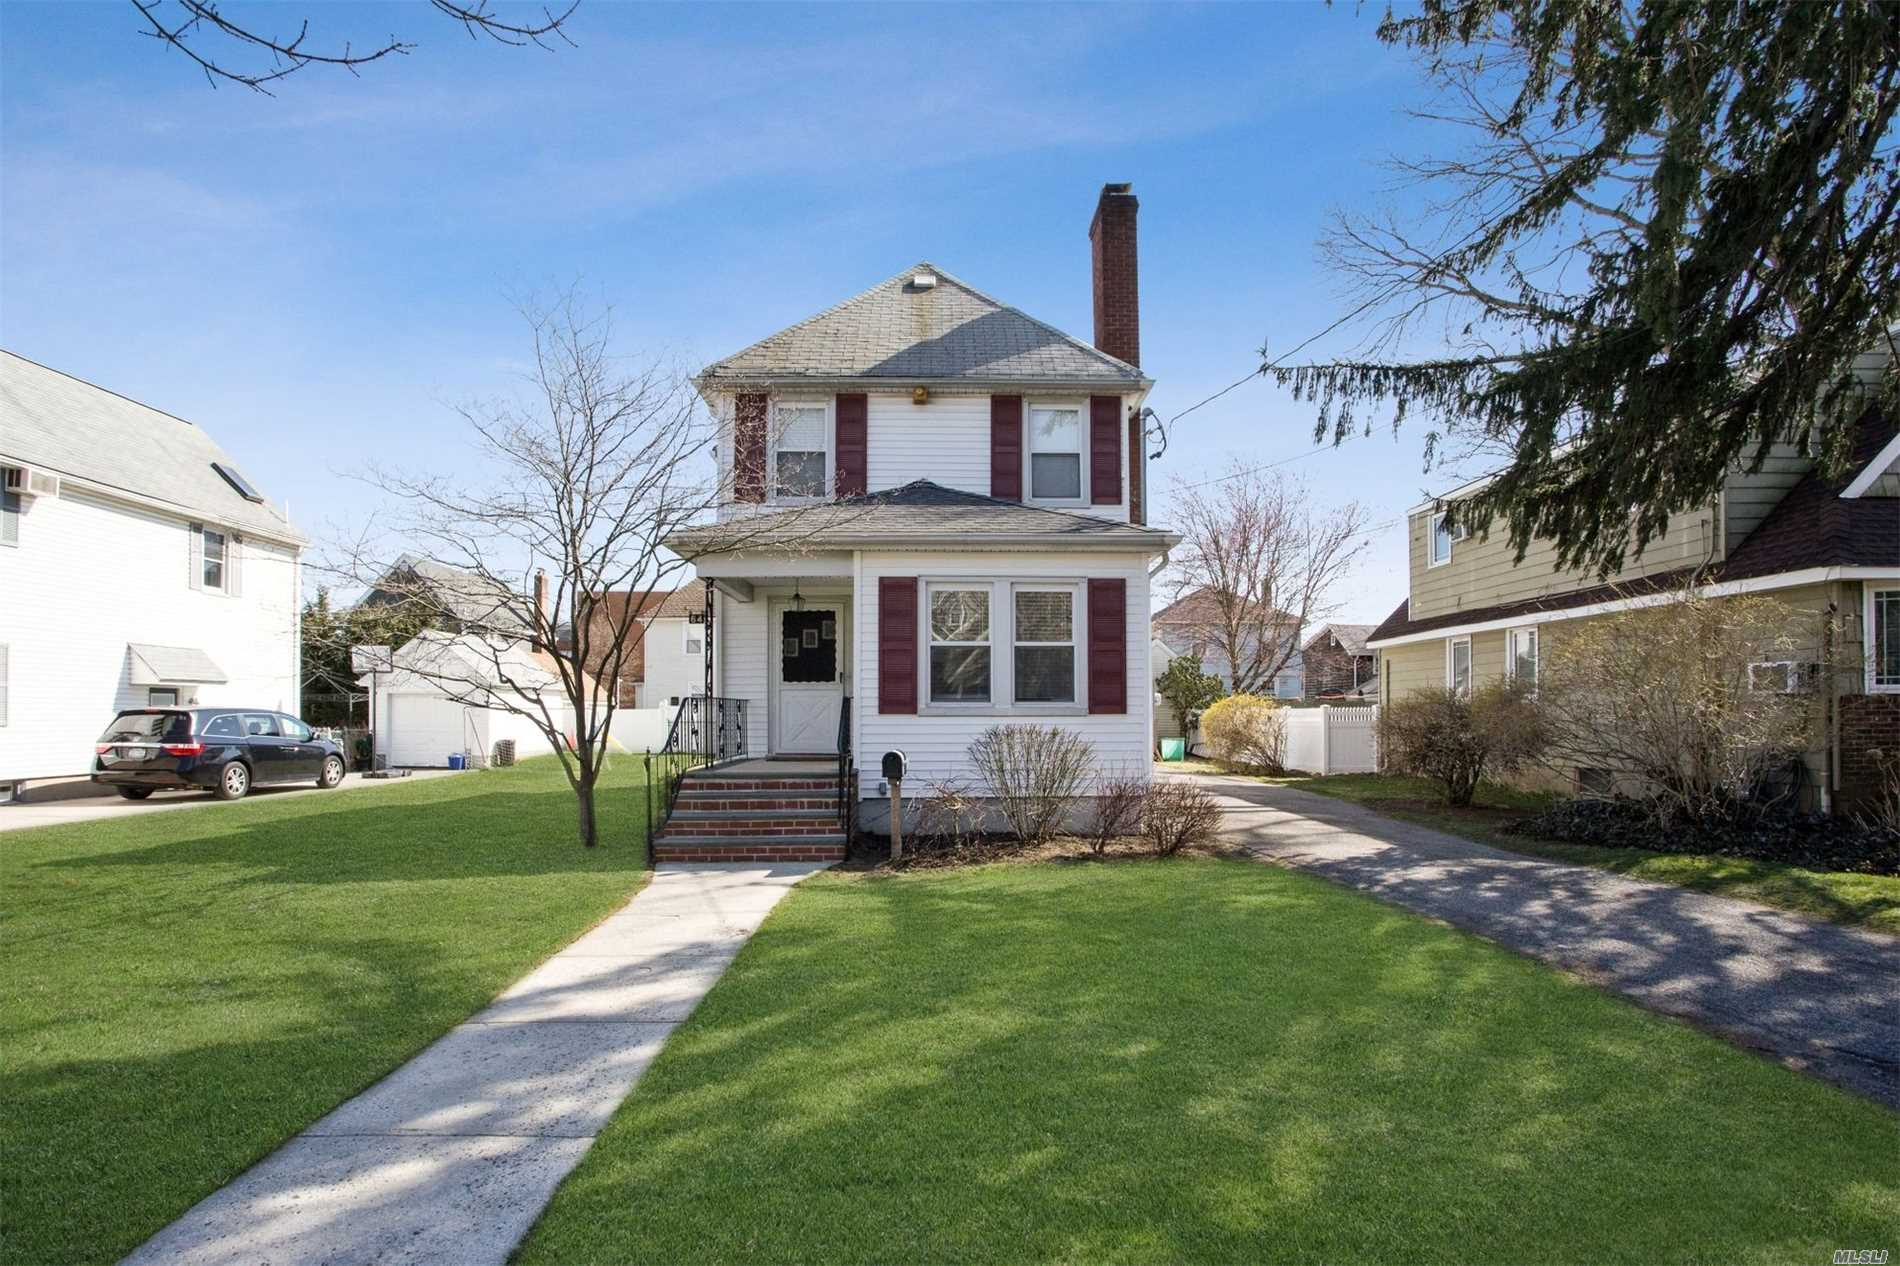 House Of The Week Price! Condition! Location! Malverne Classic Colonial Situated On A 60 x 100 Park Like Lot. This Home Boasts A Living Room With A Fireplace and Mahogany Inlaid Hardwood Floor. Formal Dining Room, Updated Eat-in-Kitchen, 3 Bedrooms and Full Bath. Close to All Schools & LIRR To NYC